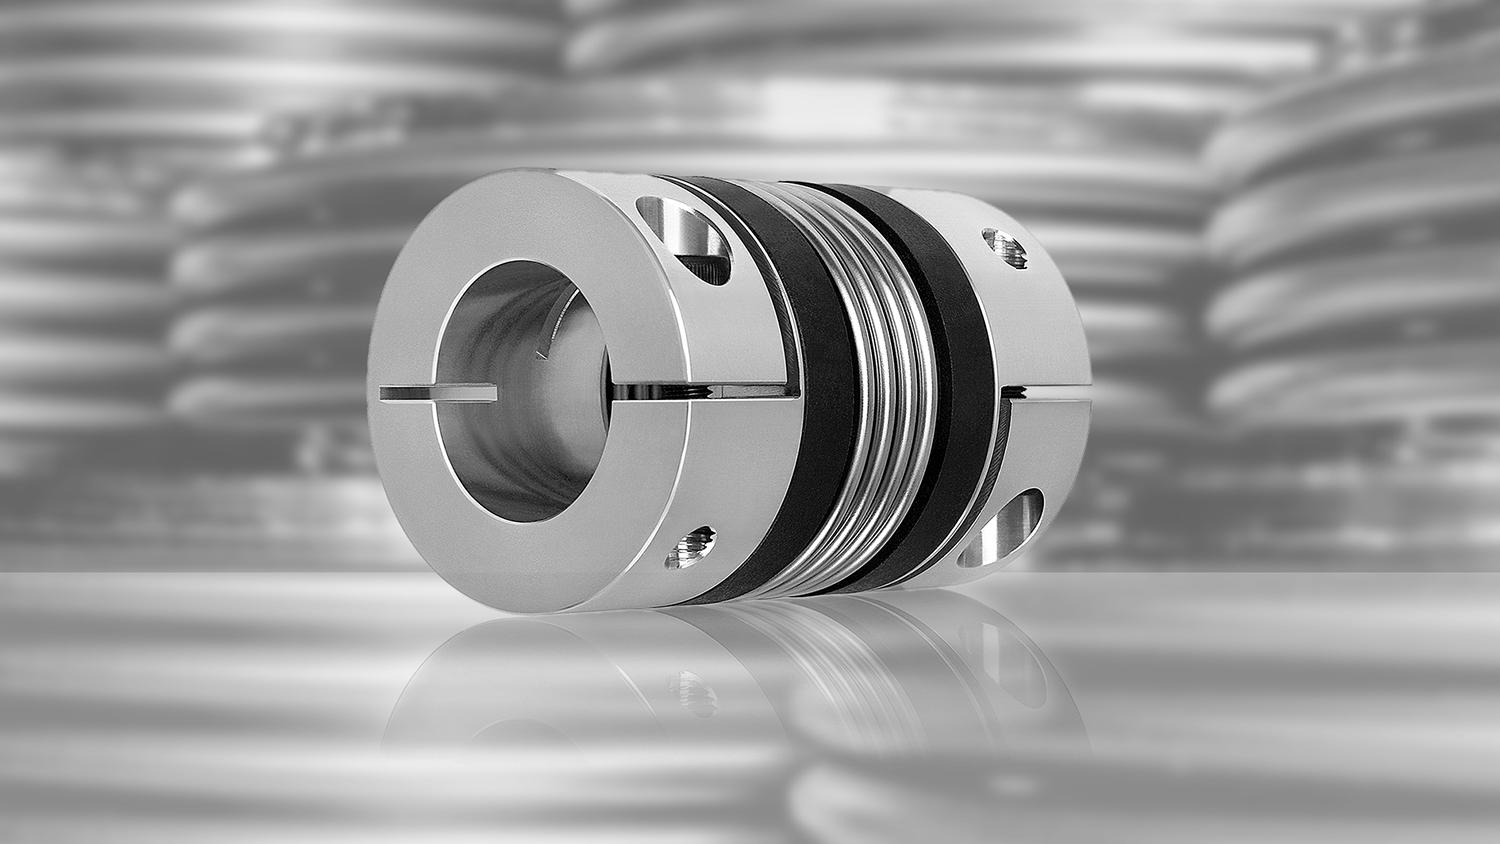 For heavier duty applications where a zero-backlash design is critical, R+W ST series torque limiting couplings are available in sizes from 2,000Nm to 165,000Nm